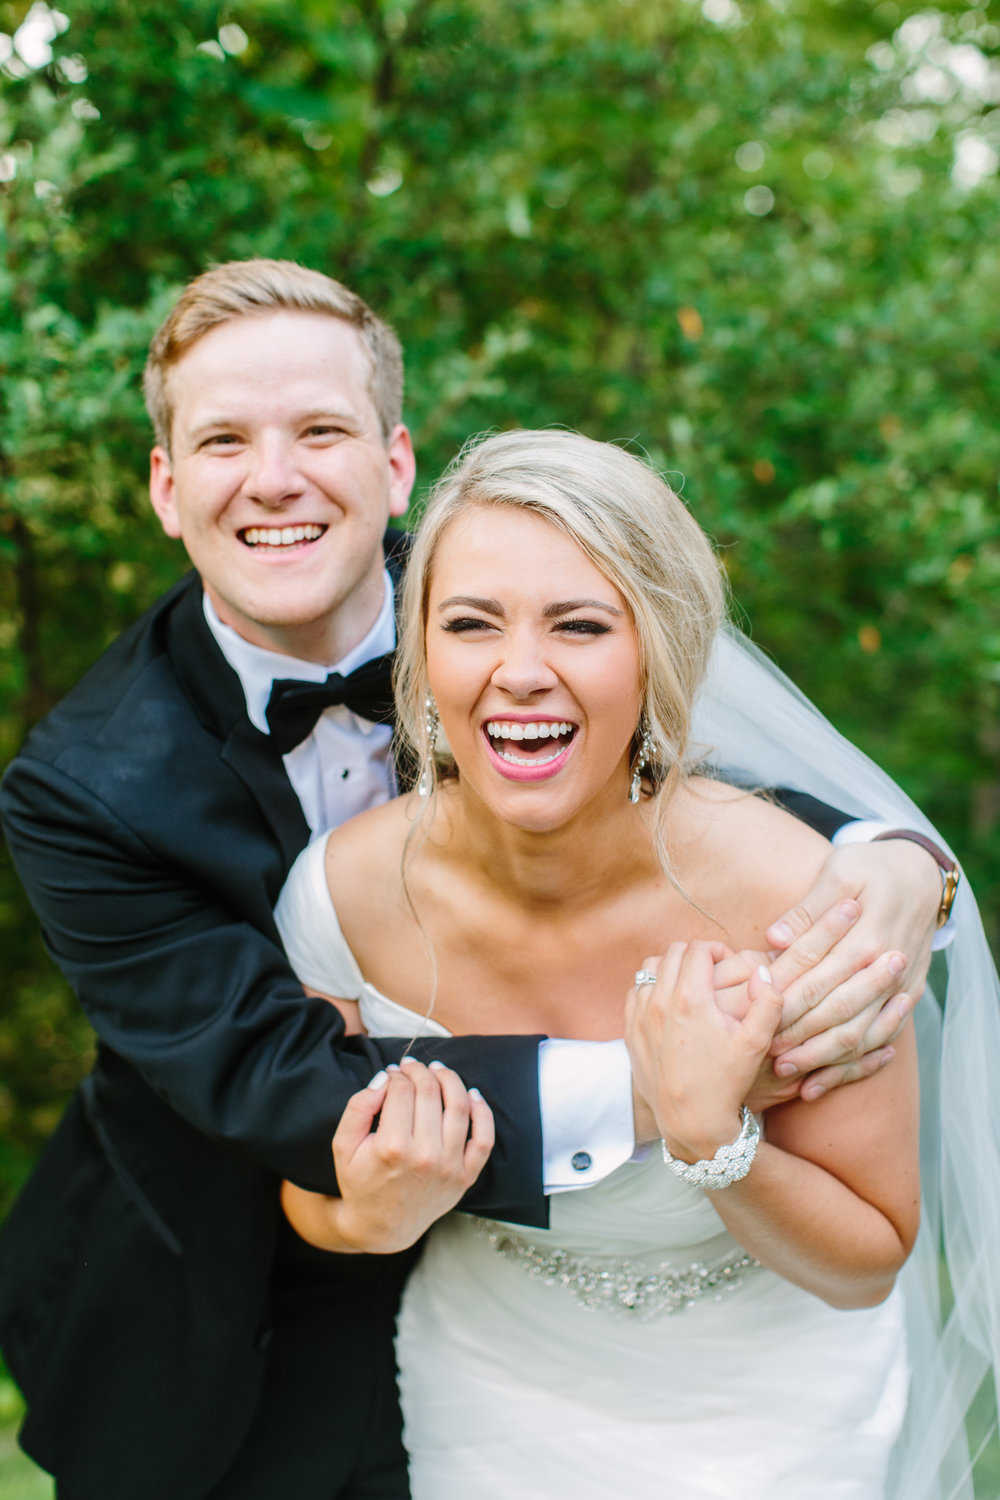 Knoxville Photographer Classic Outdoor Wedding Laughing Bride & Groom